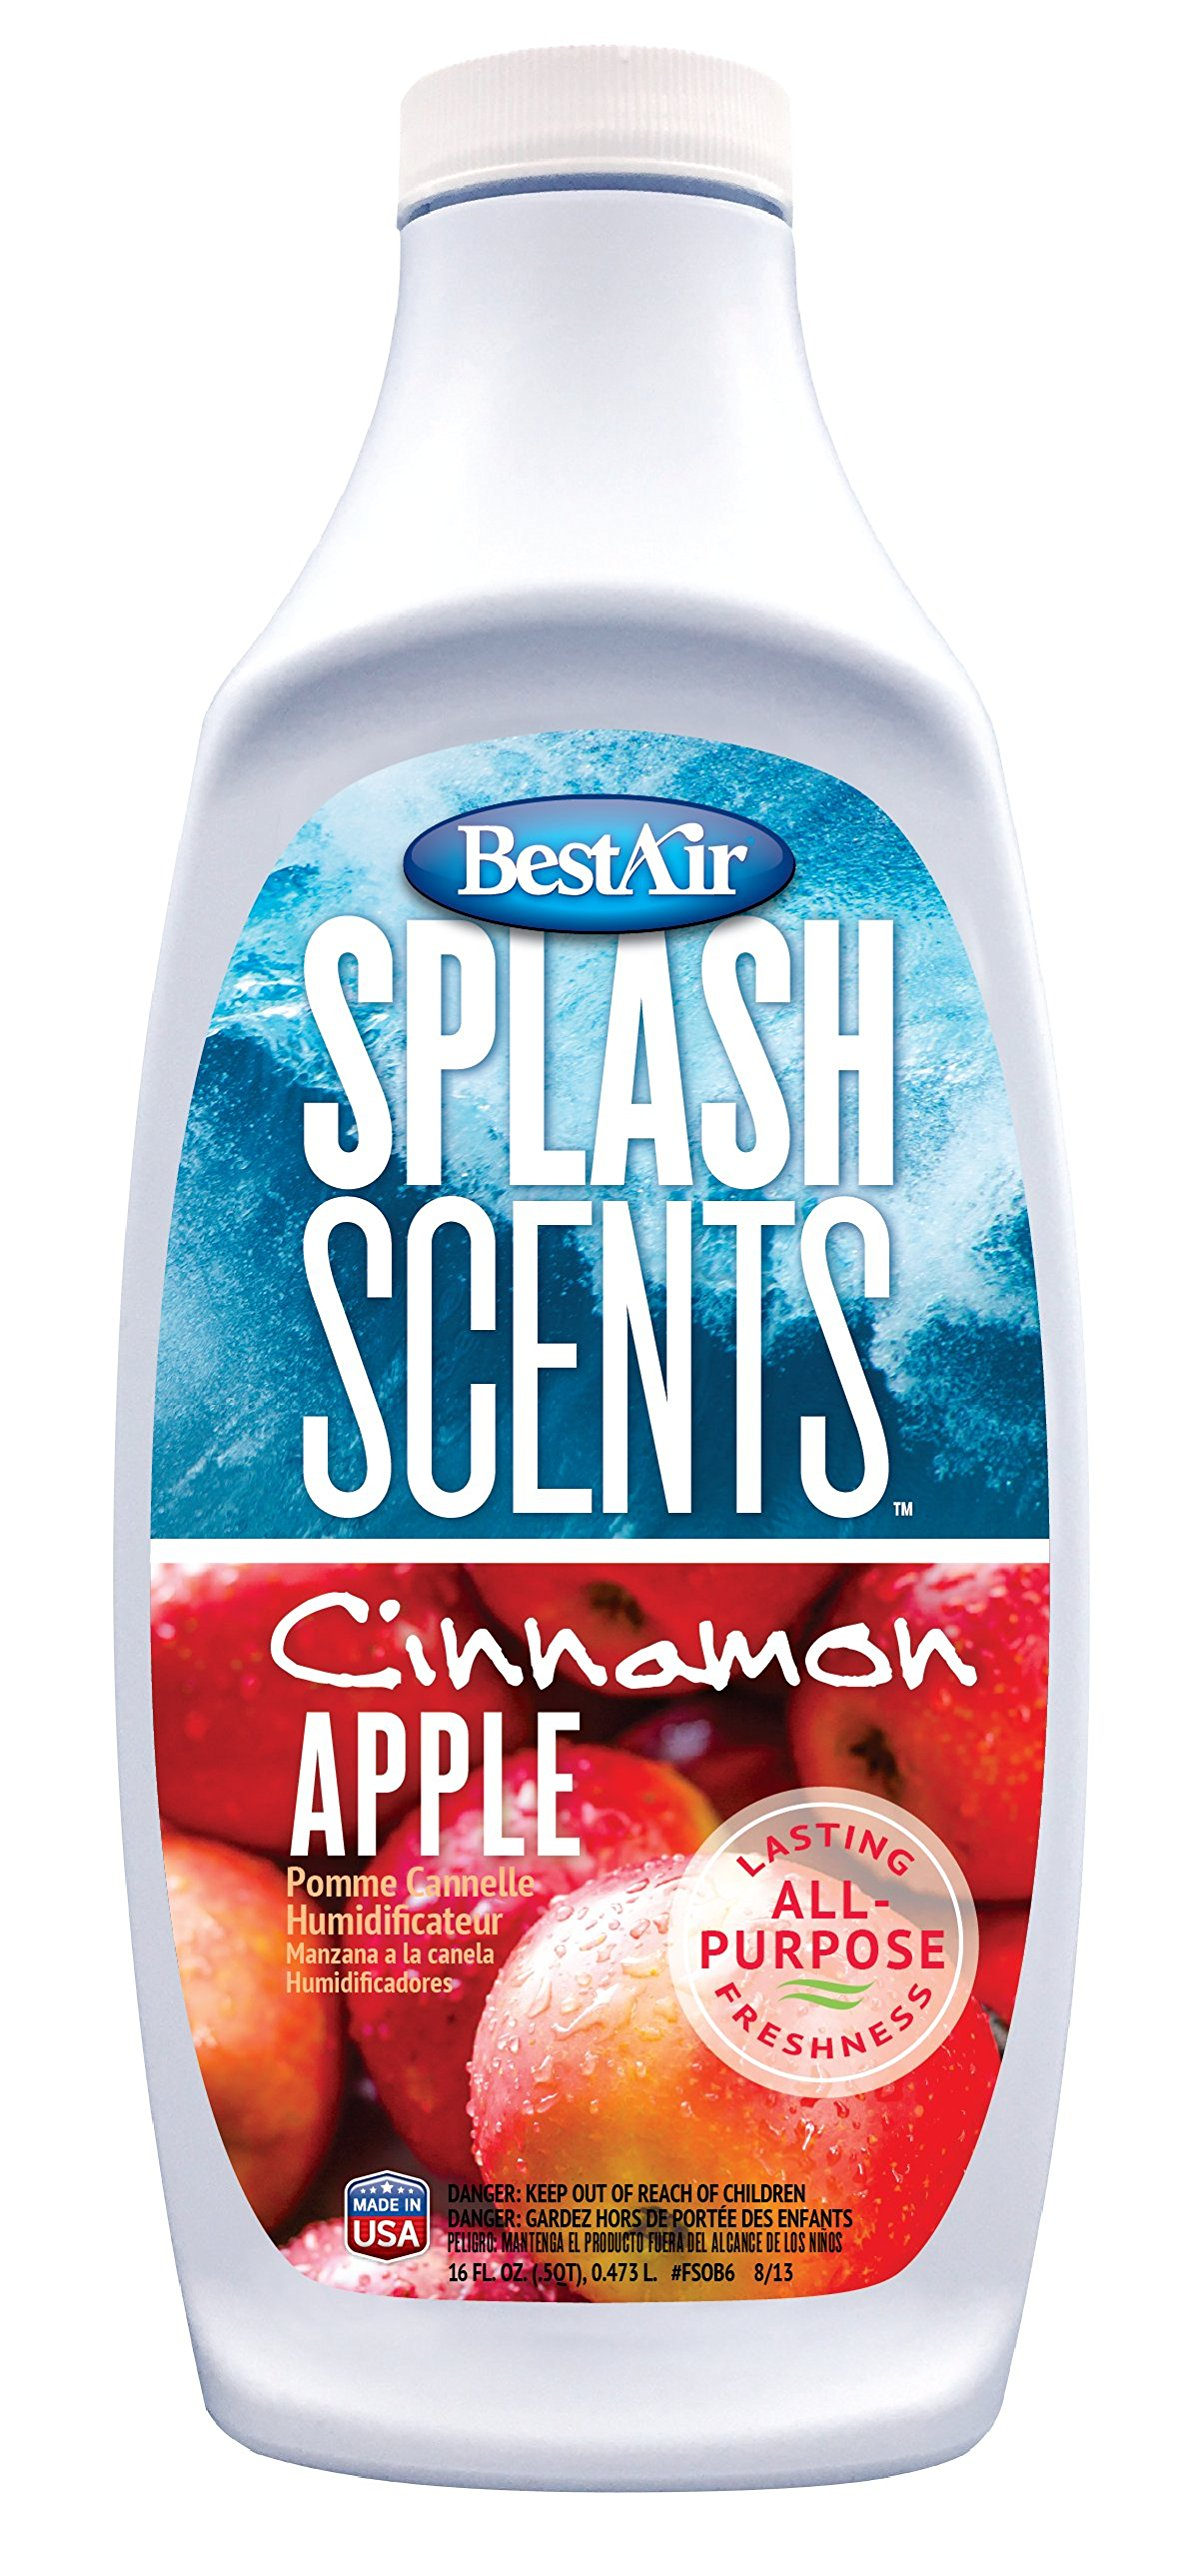 Bestair FSCA6, Cinnamon Apple Splash Scents and Water Treatment, 16 oz, 6 pack